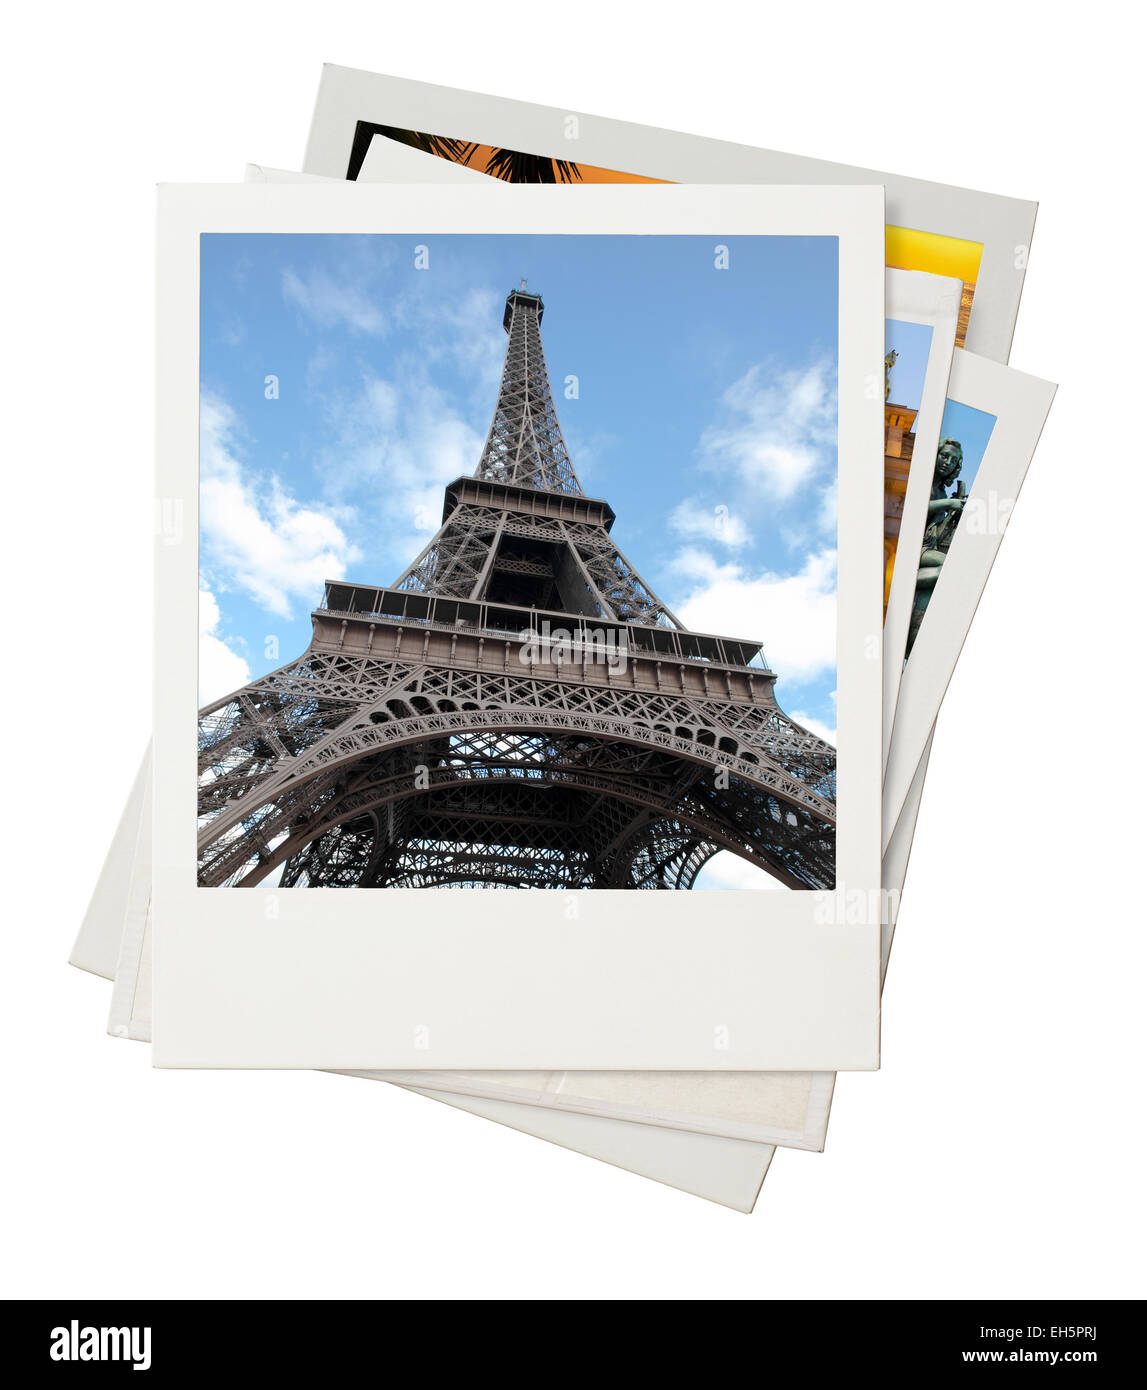 Travel photo collage isolated on white background - Stock Image